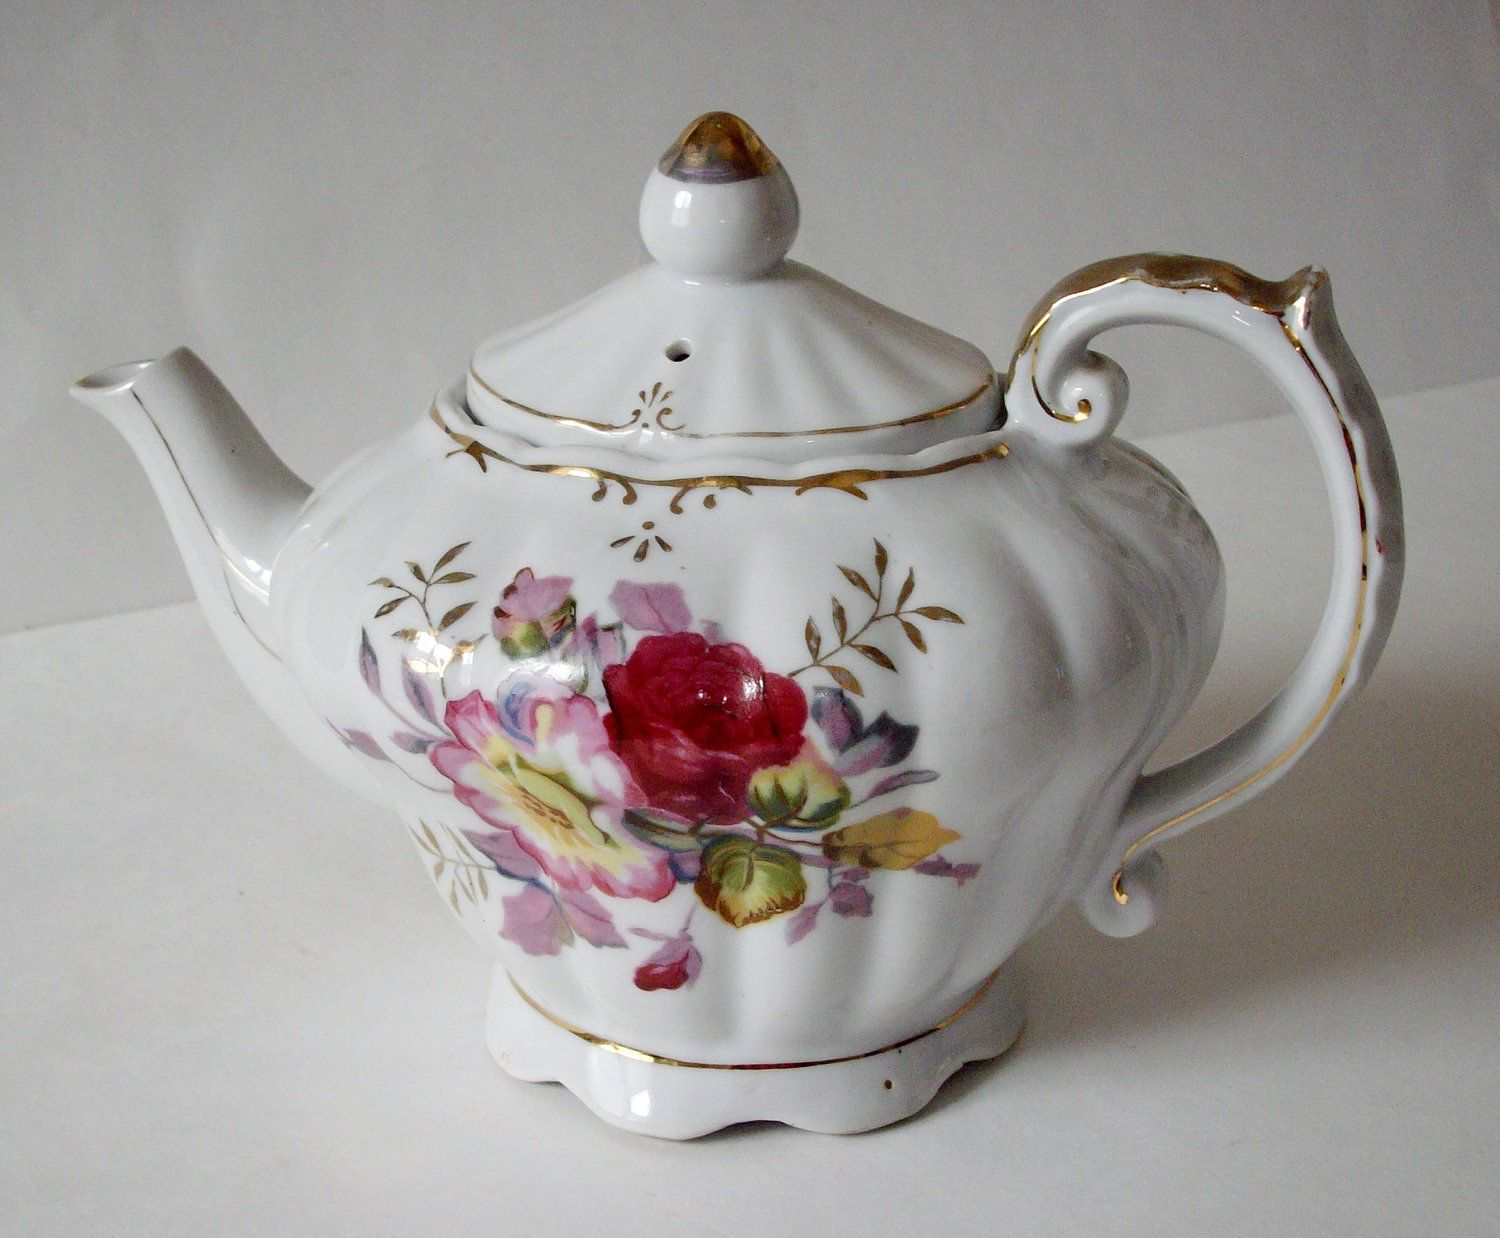 Making Tea In A Teapot Vintage Musical Teapot 1960s Tilso Made In Japan A Spot